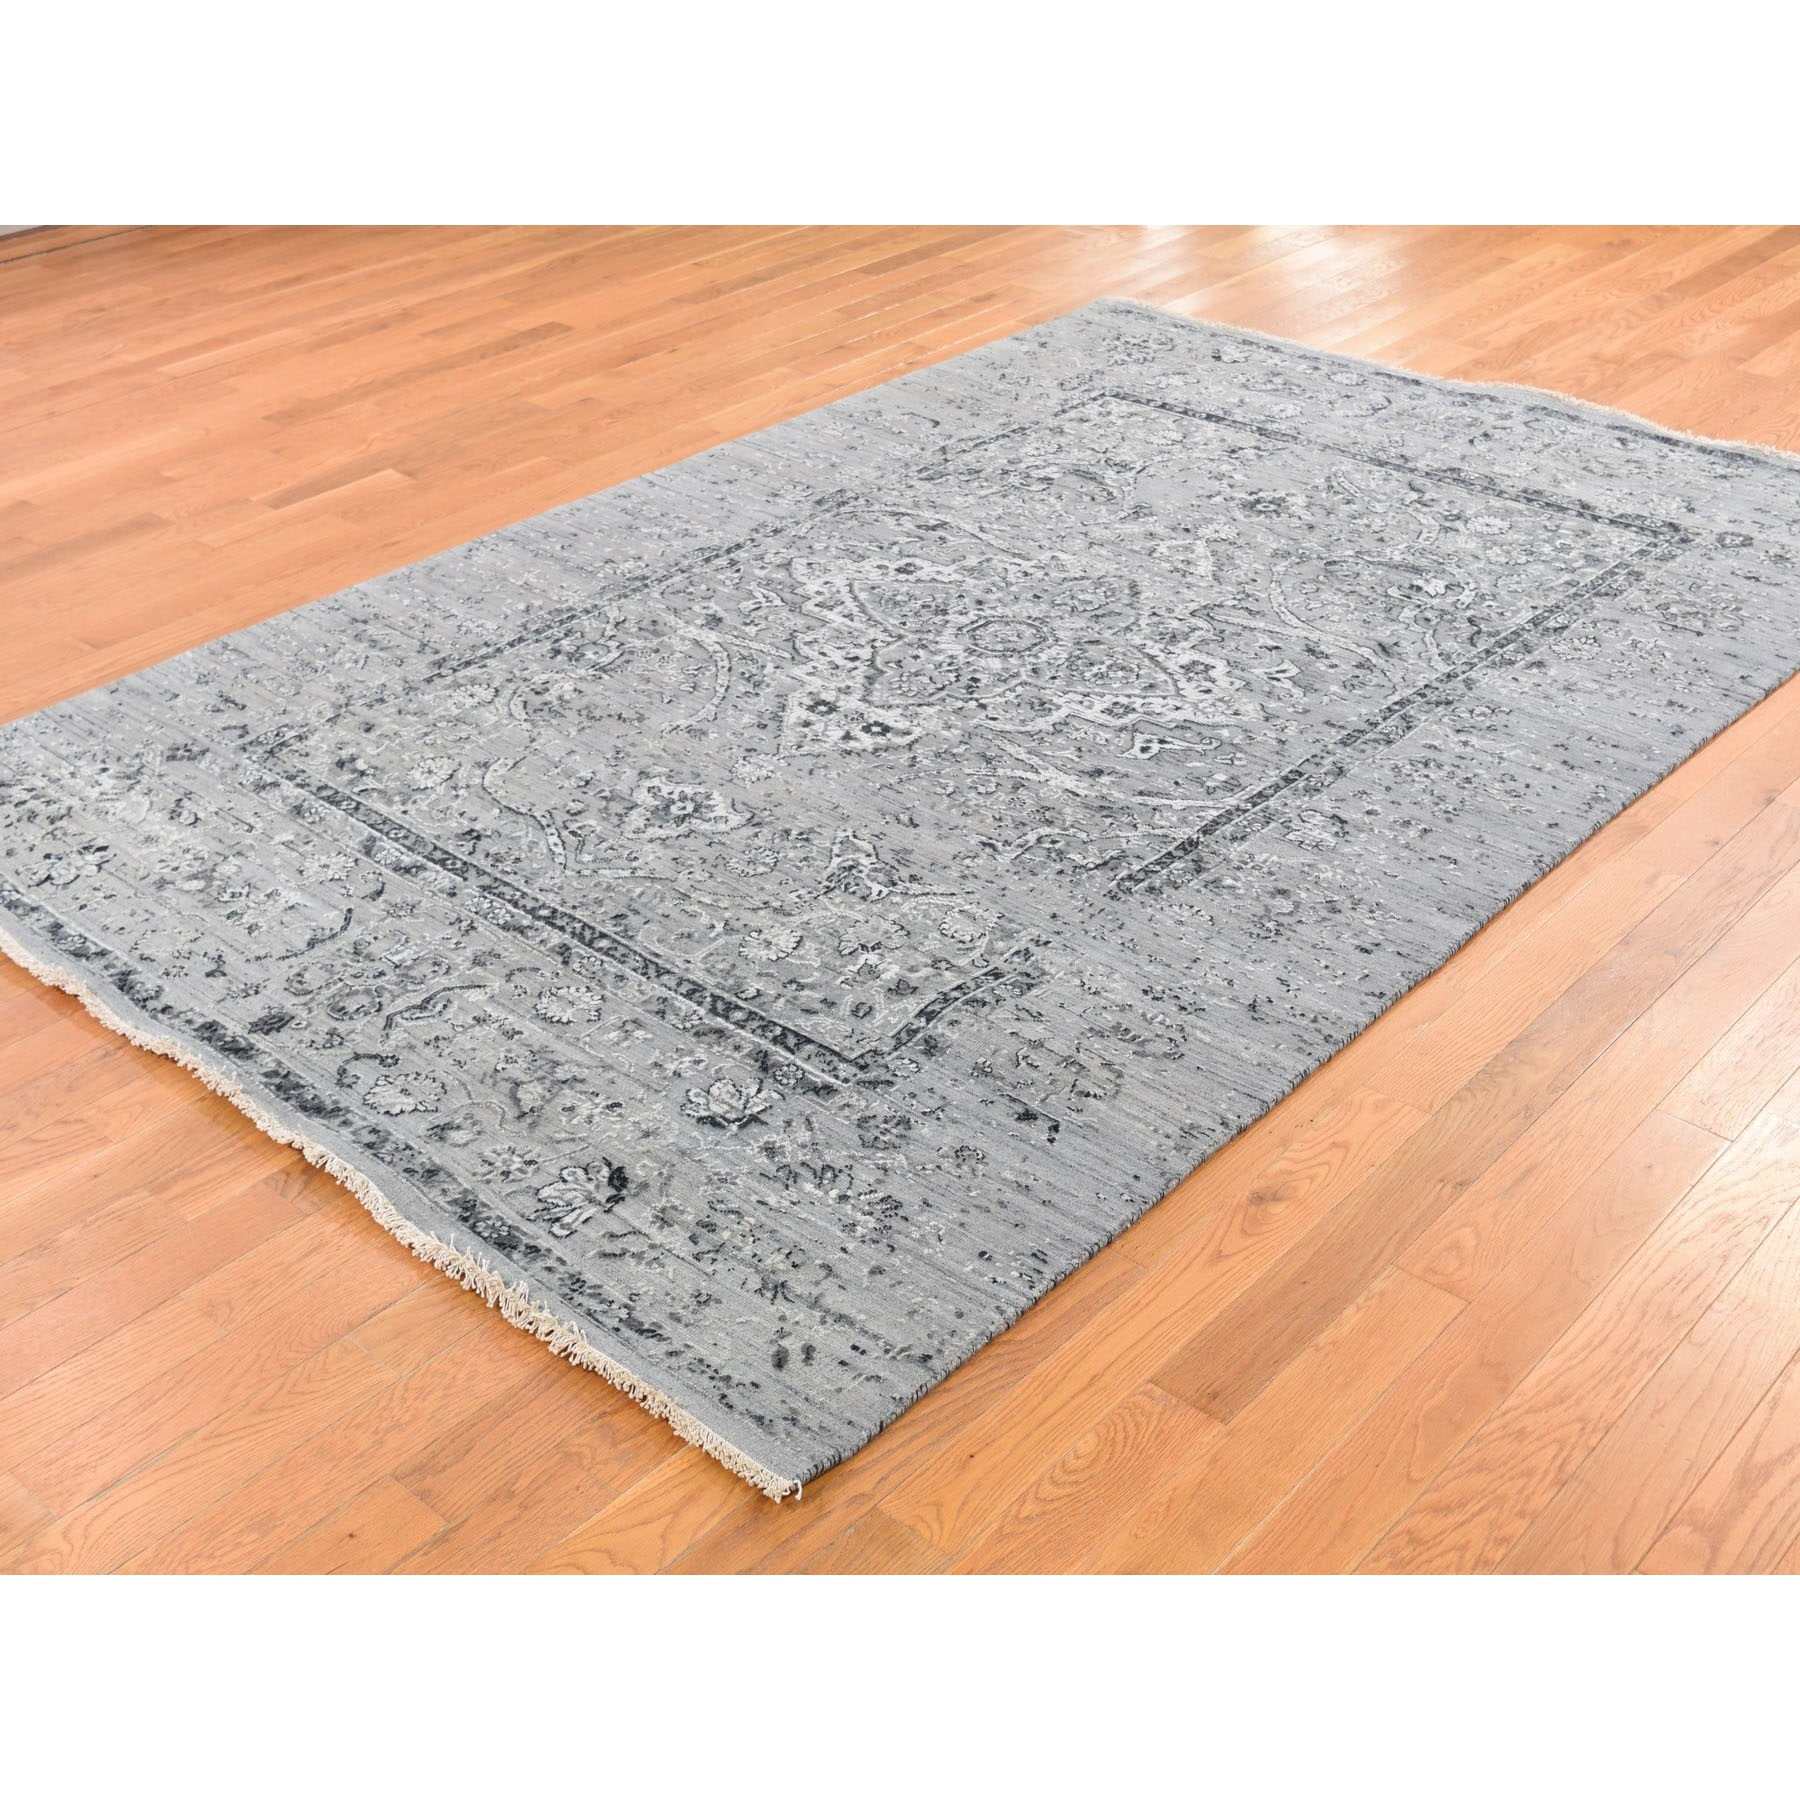 6'x9' Gray Broken Persian Erased Design Silk With Textured Wool Hand Knotted Oriental Rug